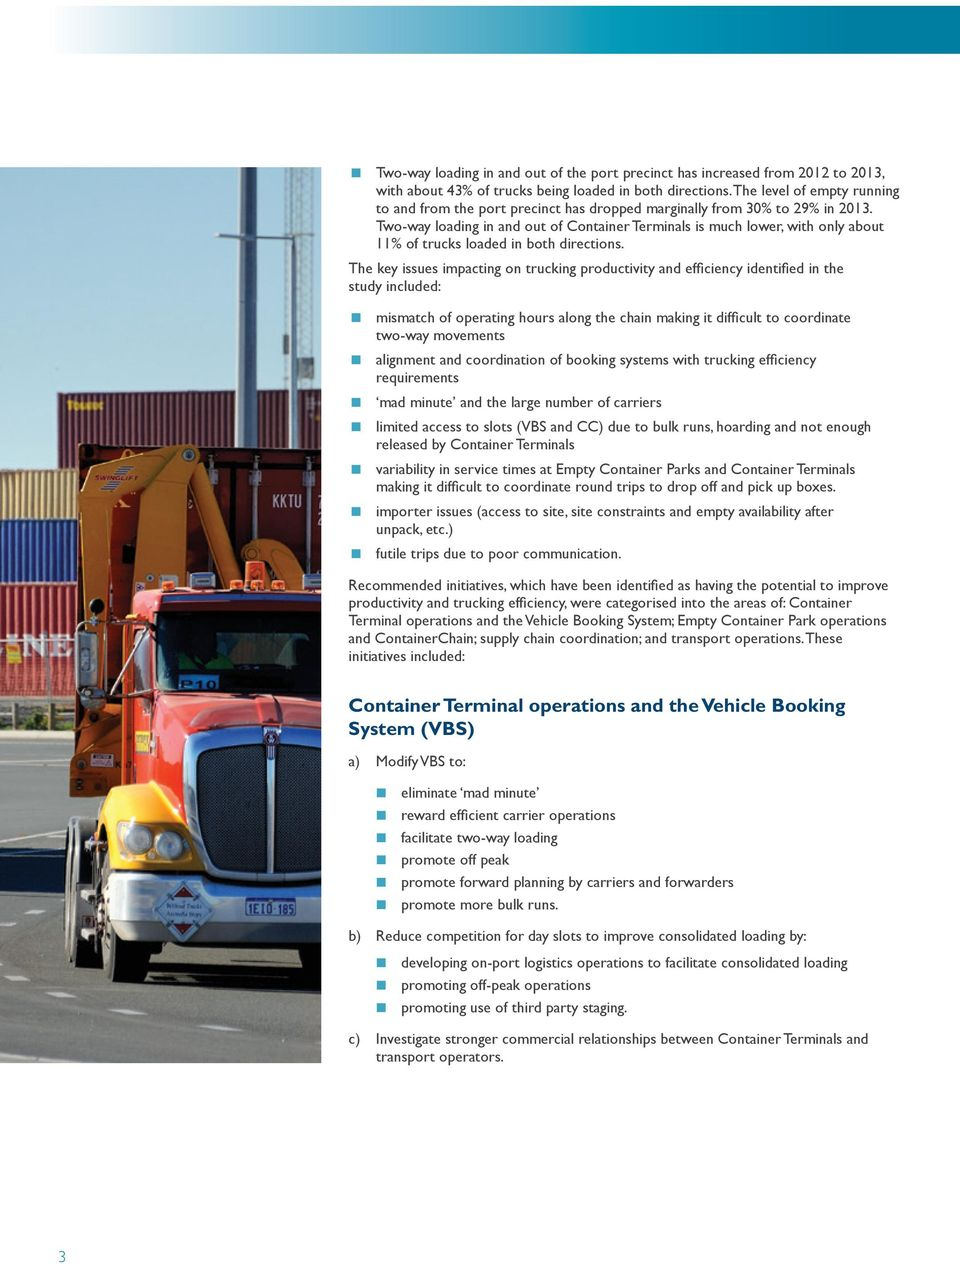 Two-way loading in and out of Container Terminals is much lower, with only about 11% of trucks loaded in both directions.